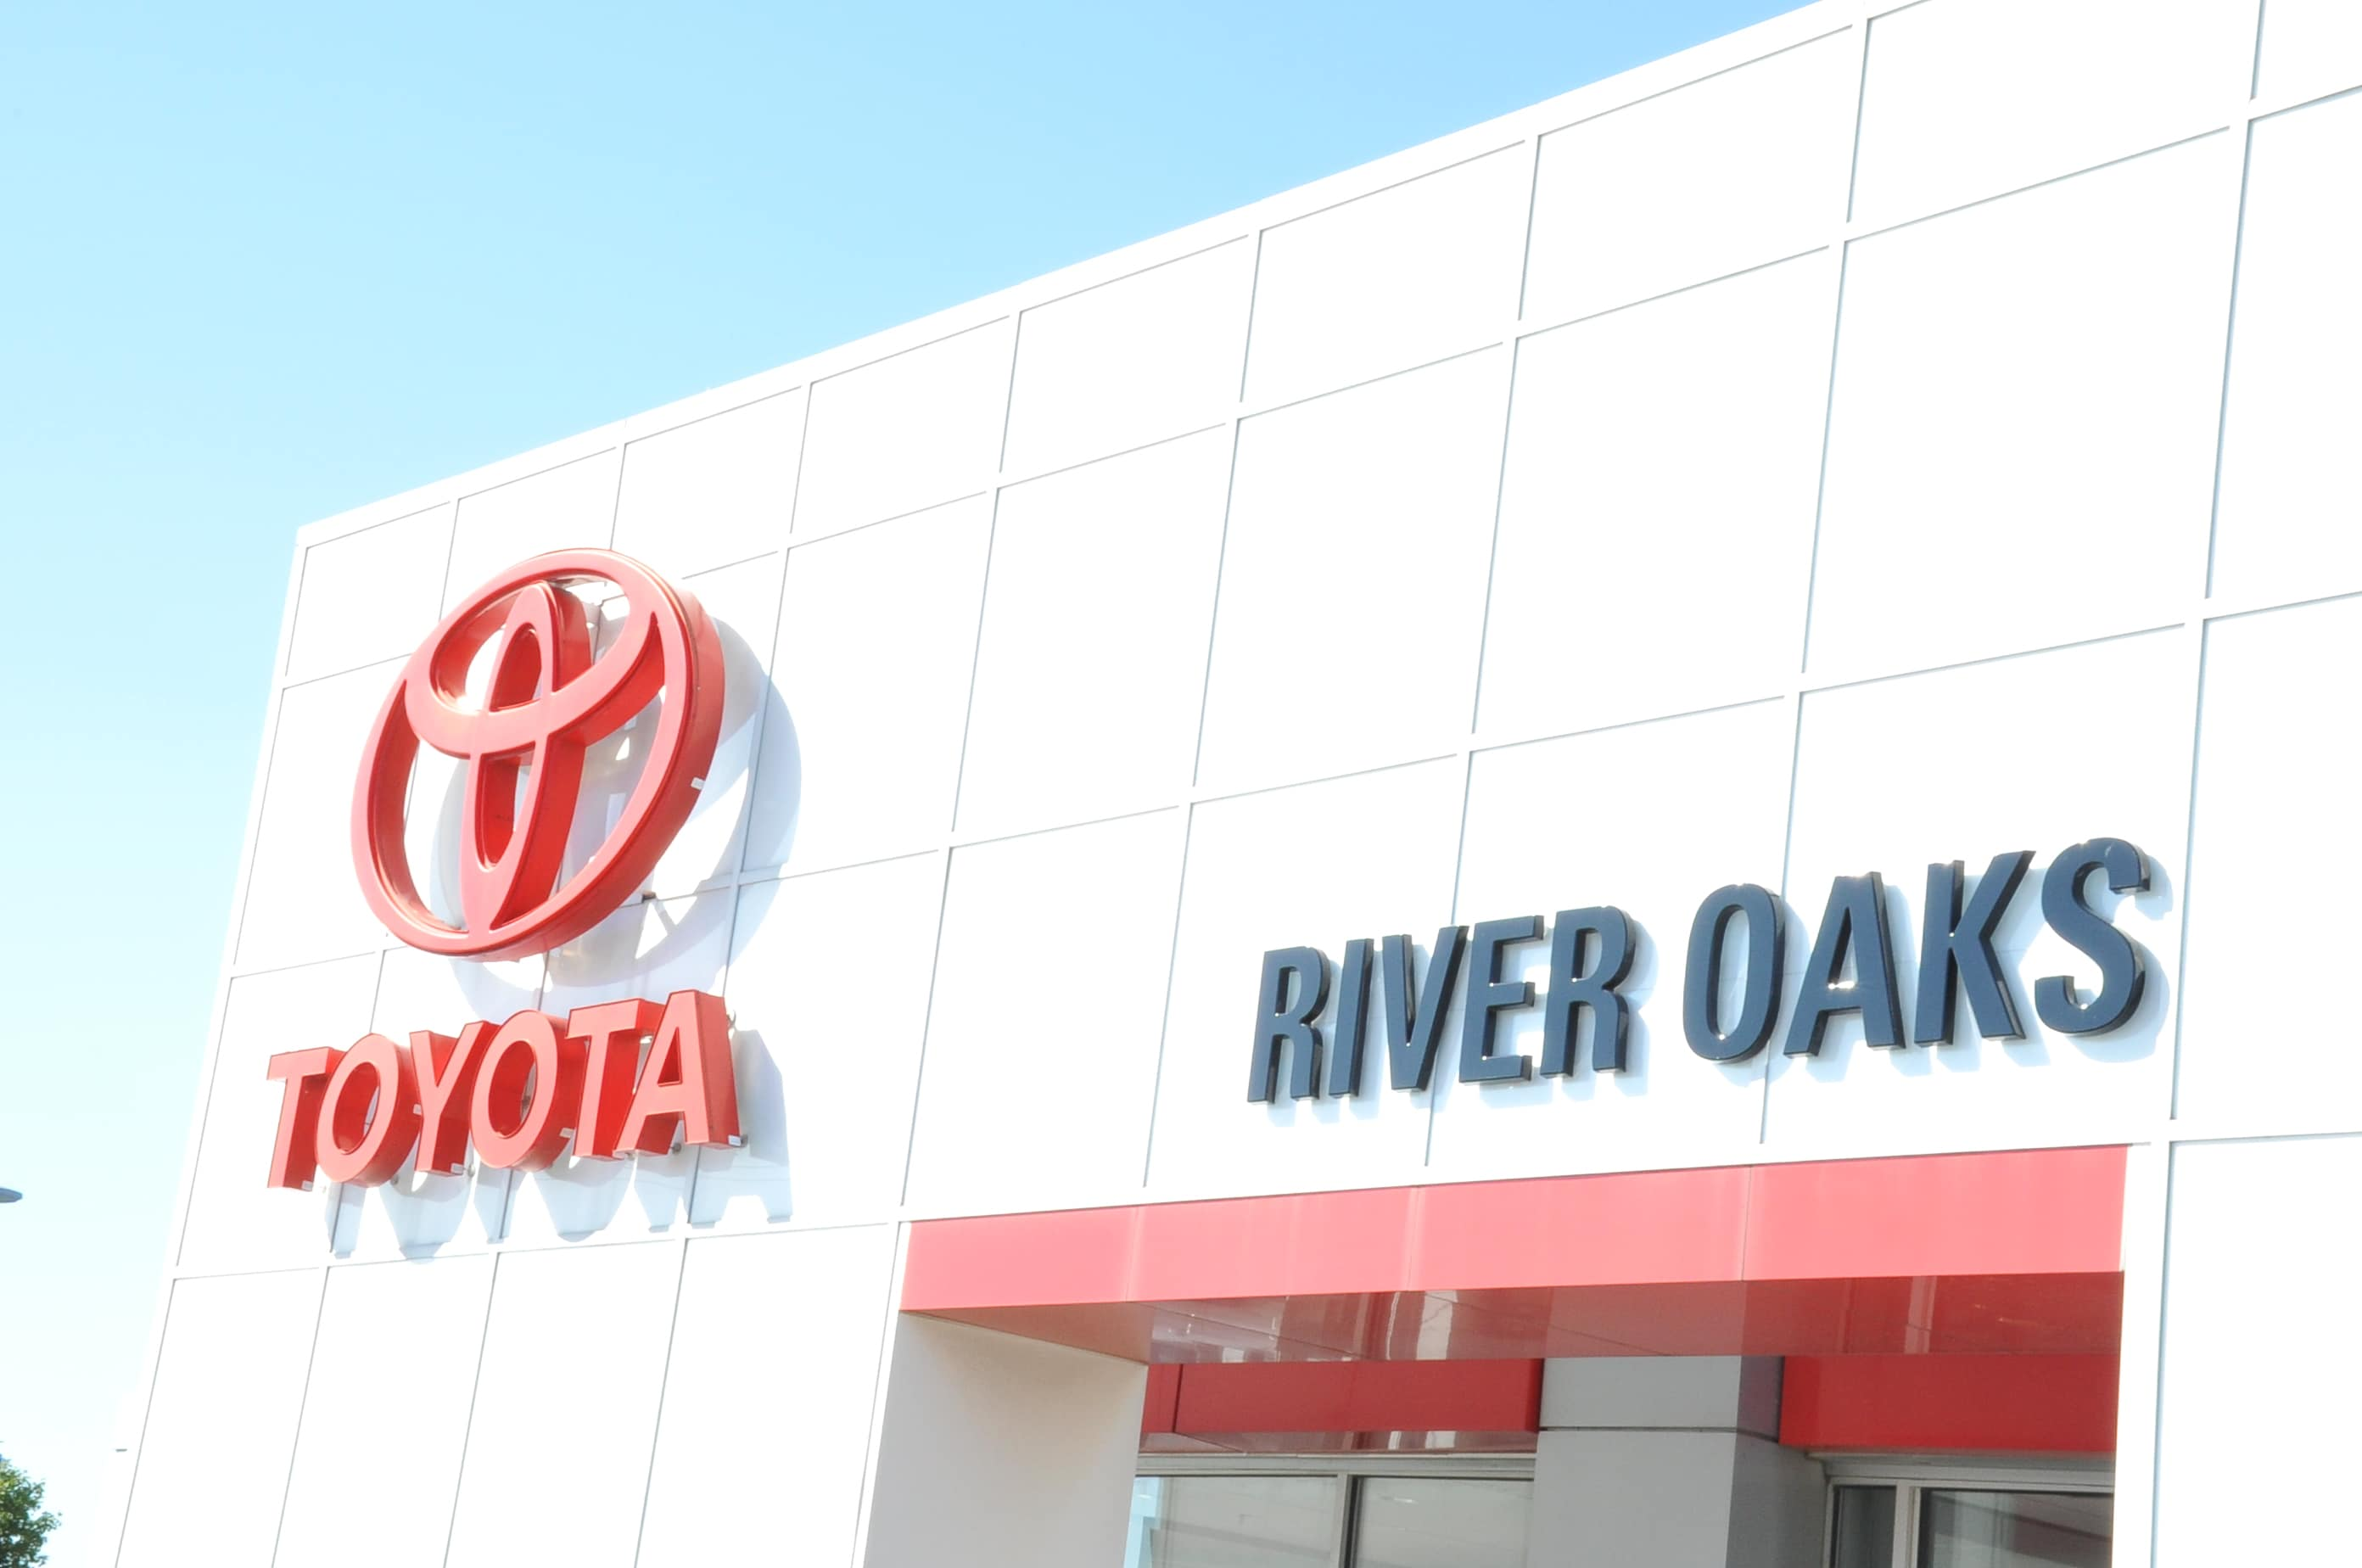 About Advantage Toyota of River Oaks in Calumet City